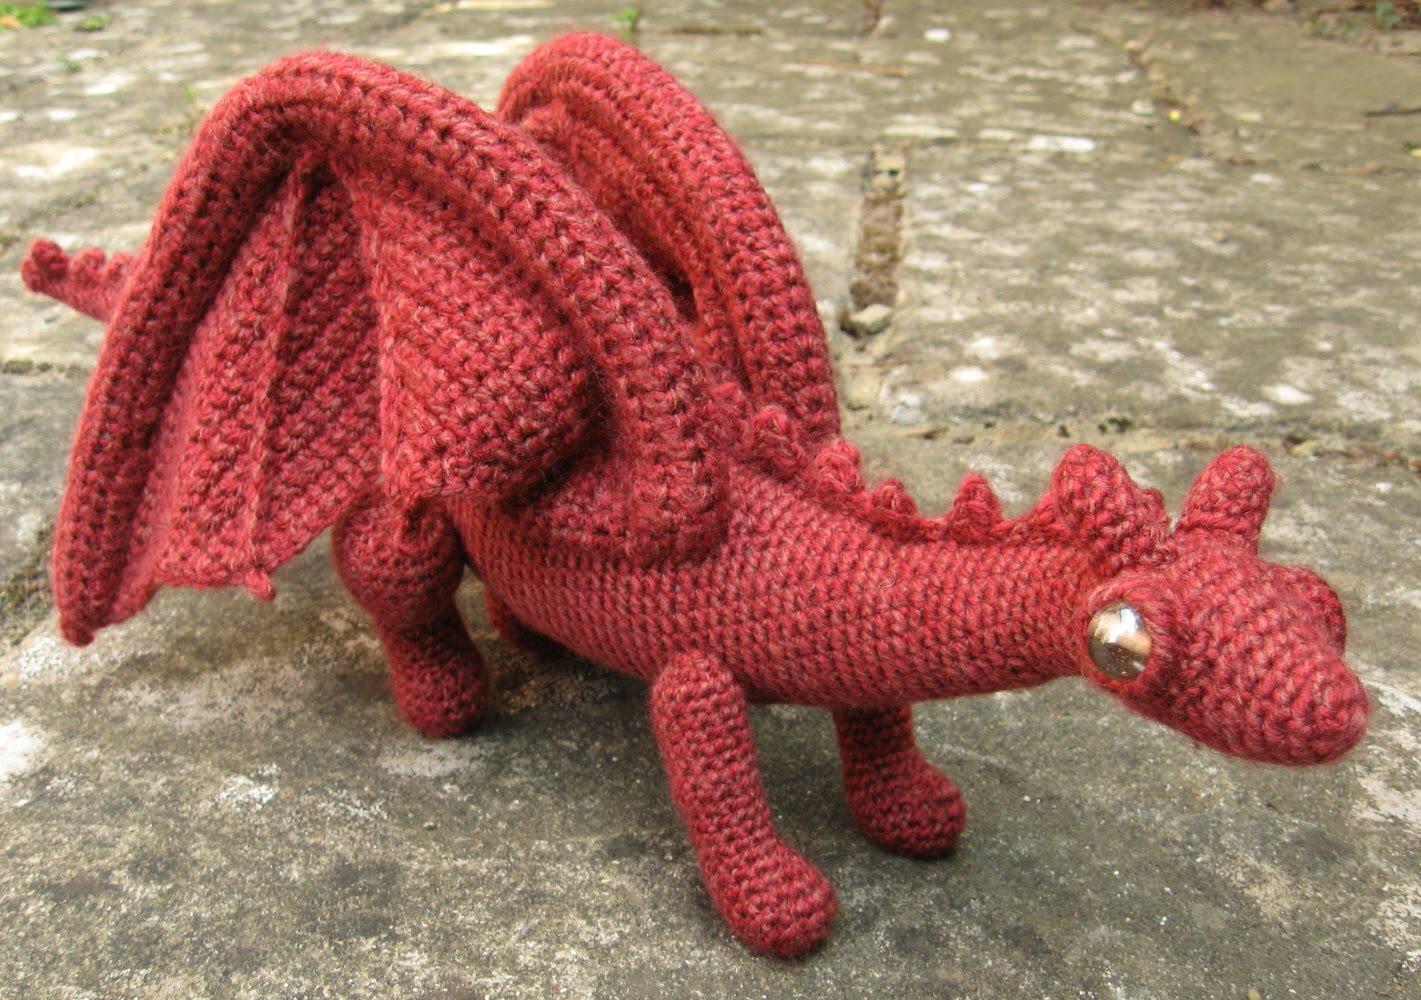 Crochet Patterns Dragon : LucyRavenscar - Crochet Creatures: Dragonet Pattern